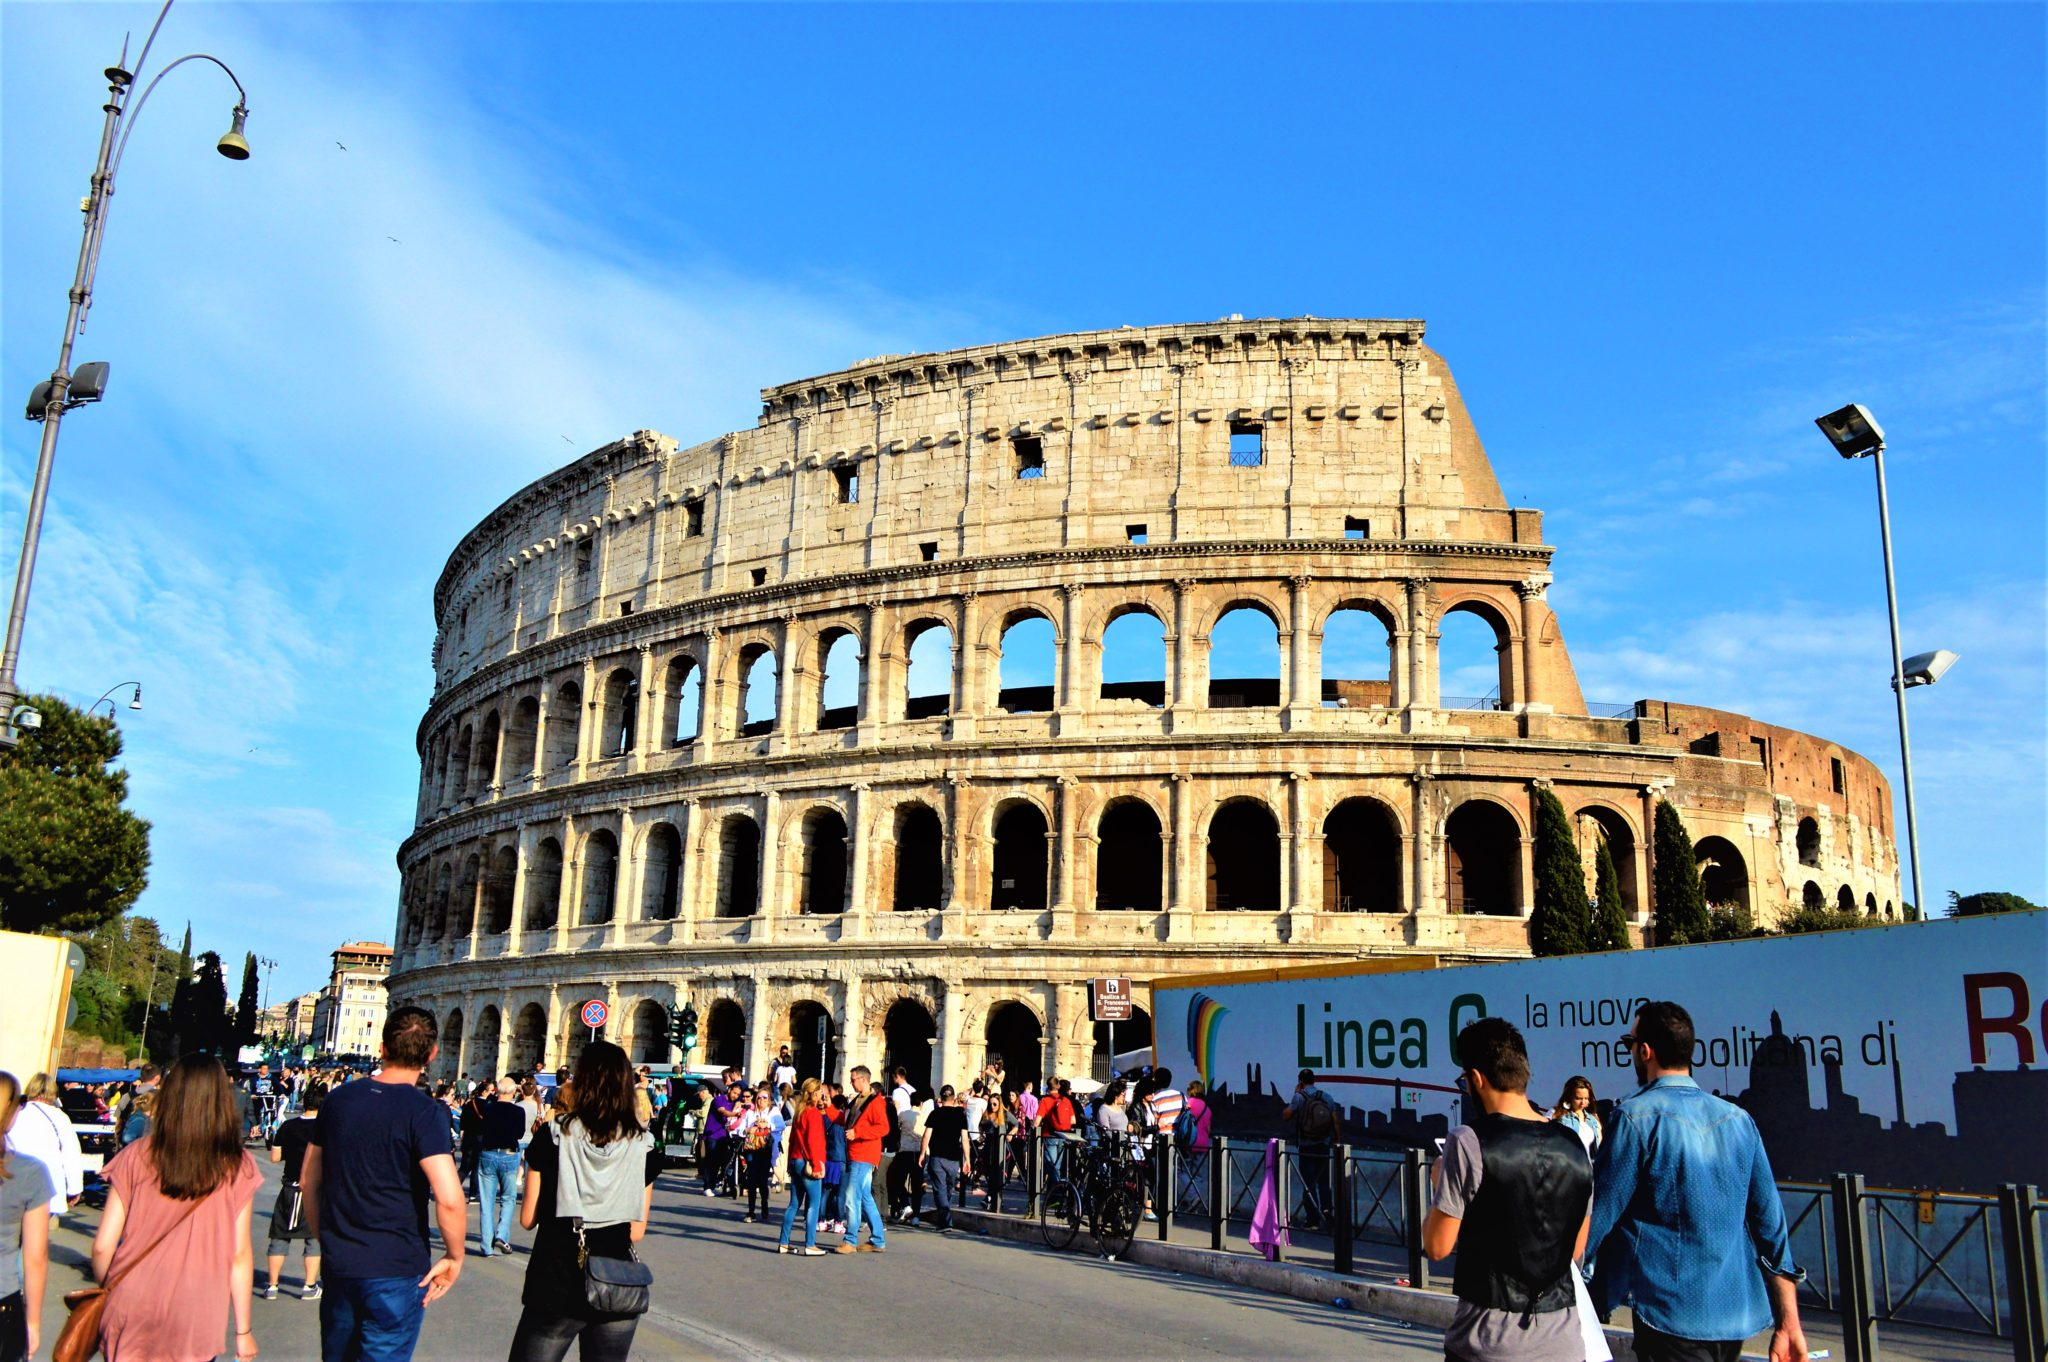 Outside the Roman Colosseum, Rome, Italy